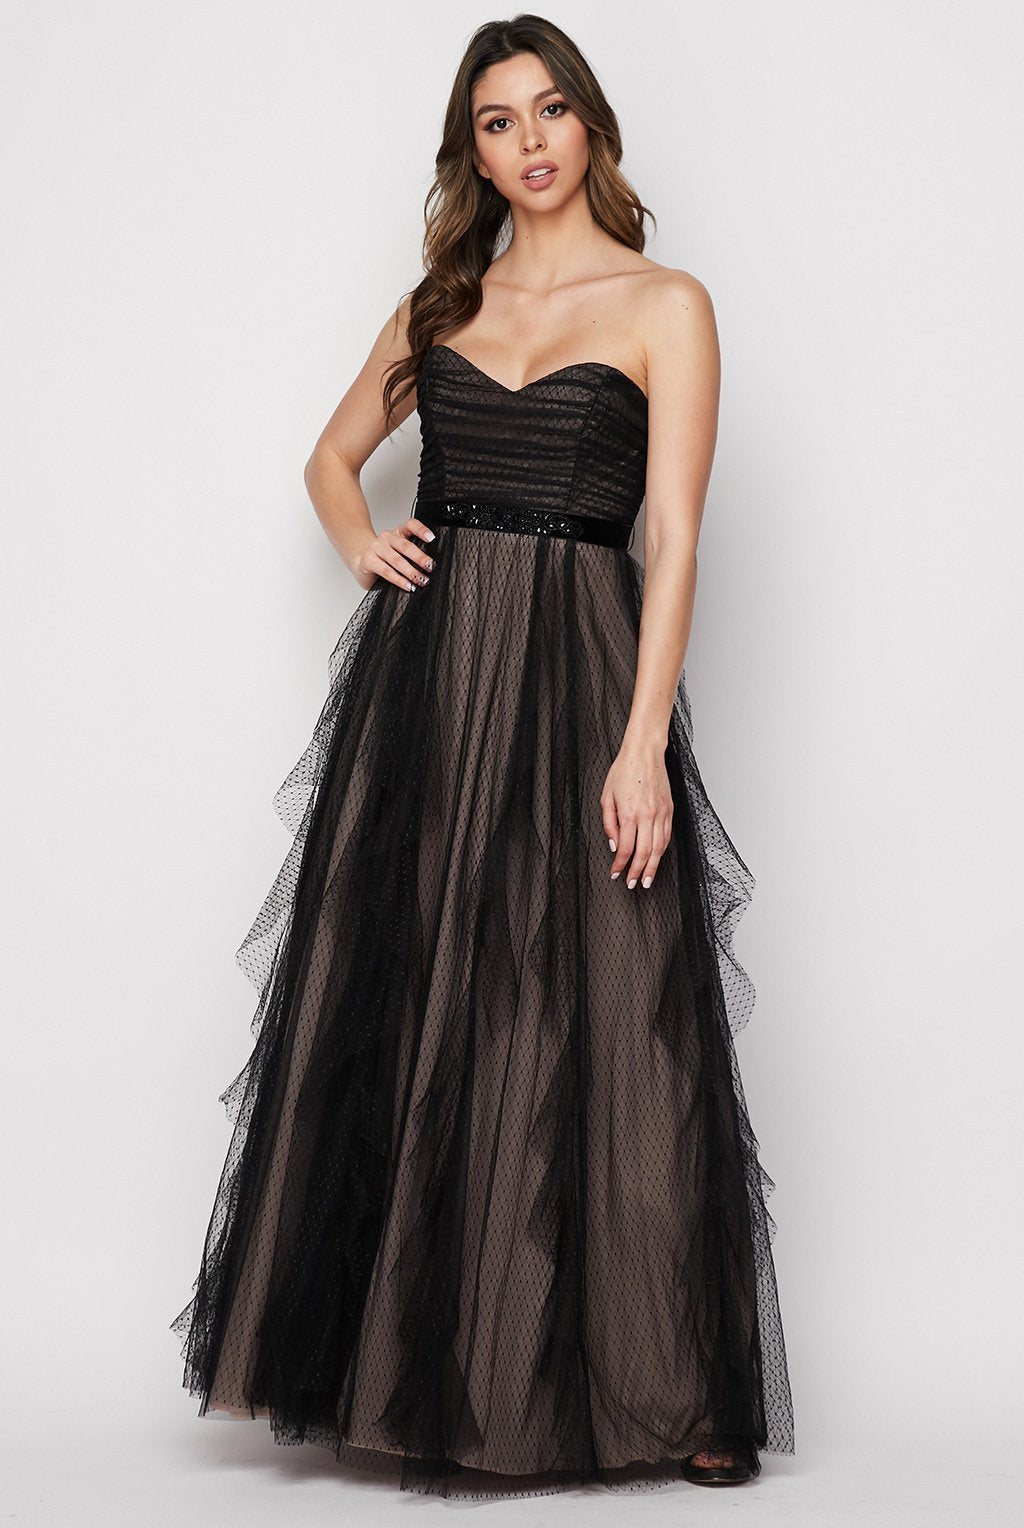 Teeze Me | Strapless Contrasting Layered Mesh Gown | Black/Nude